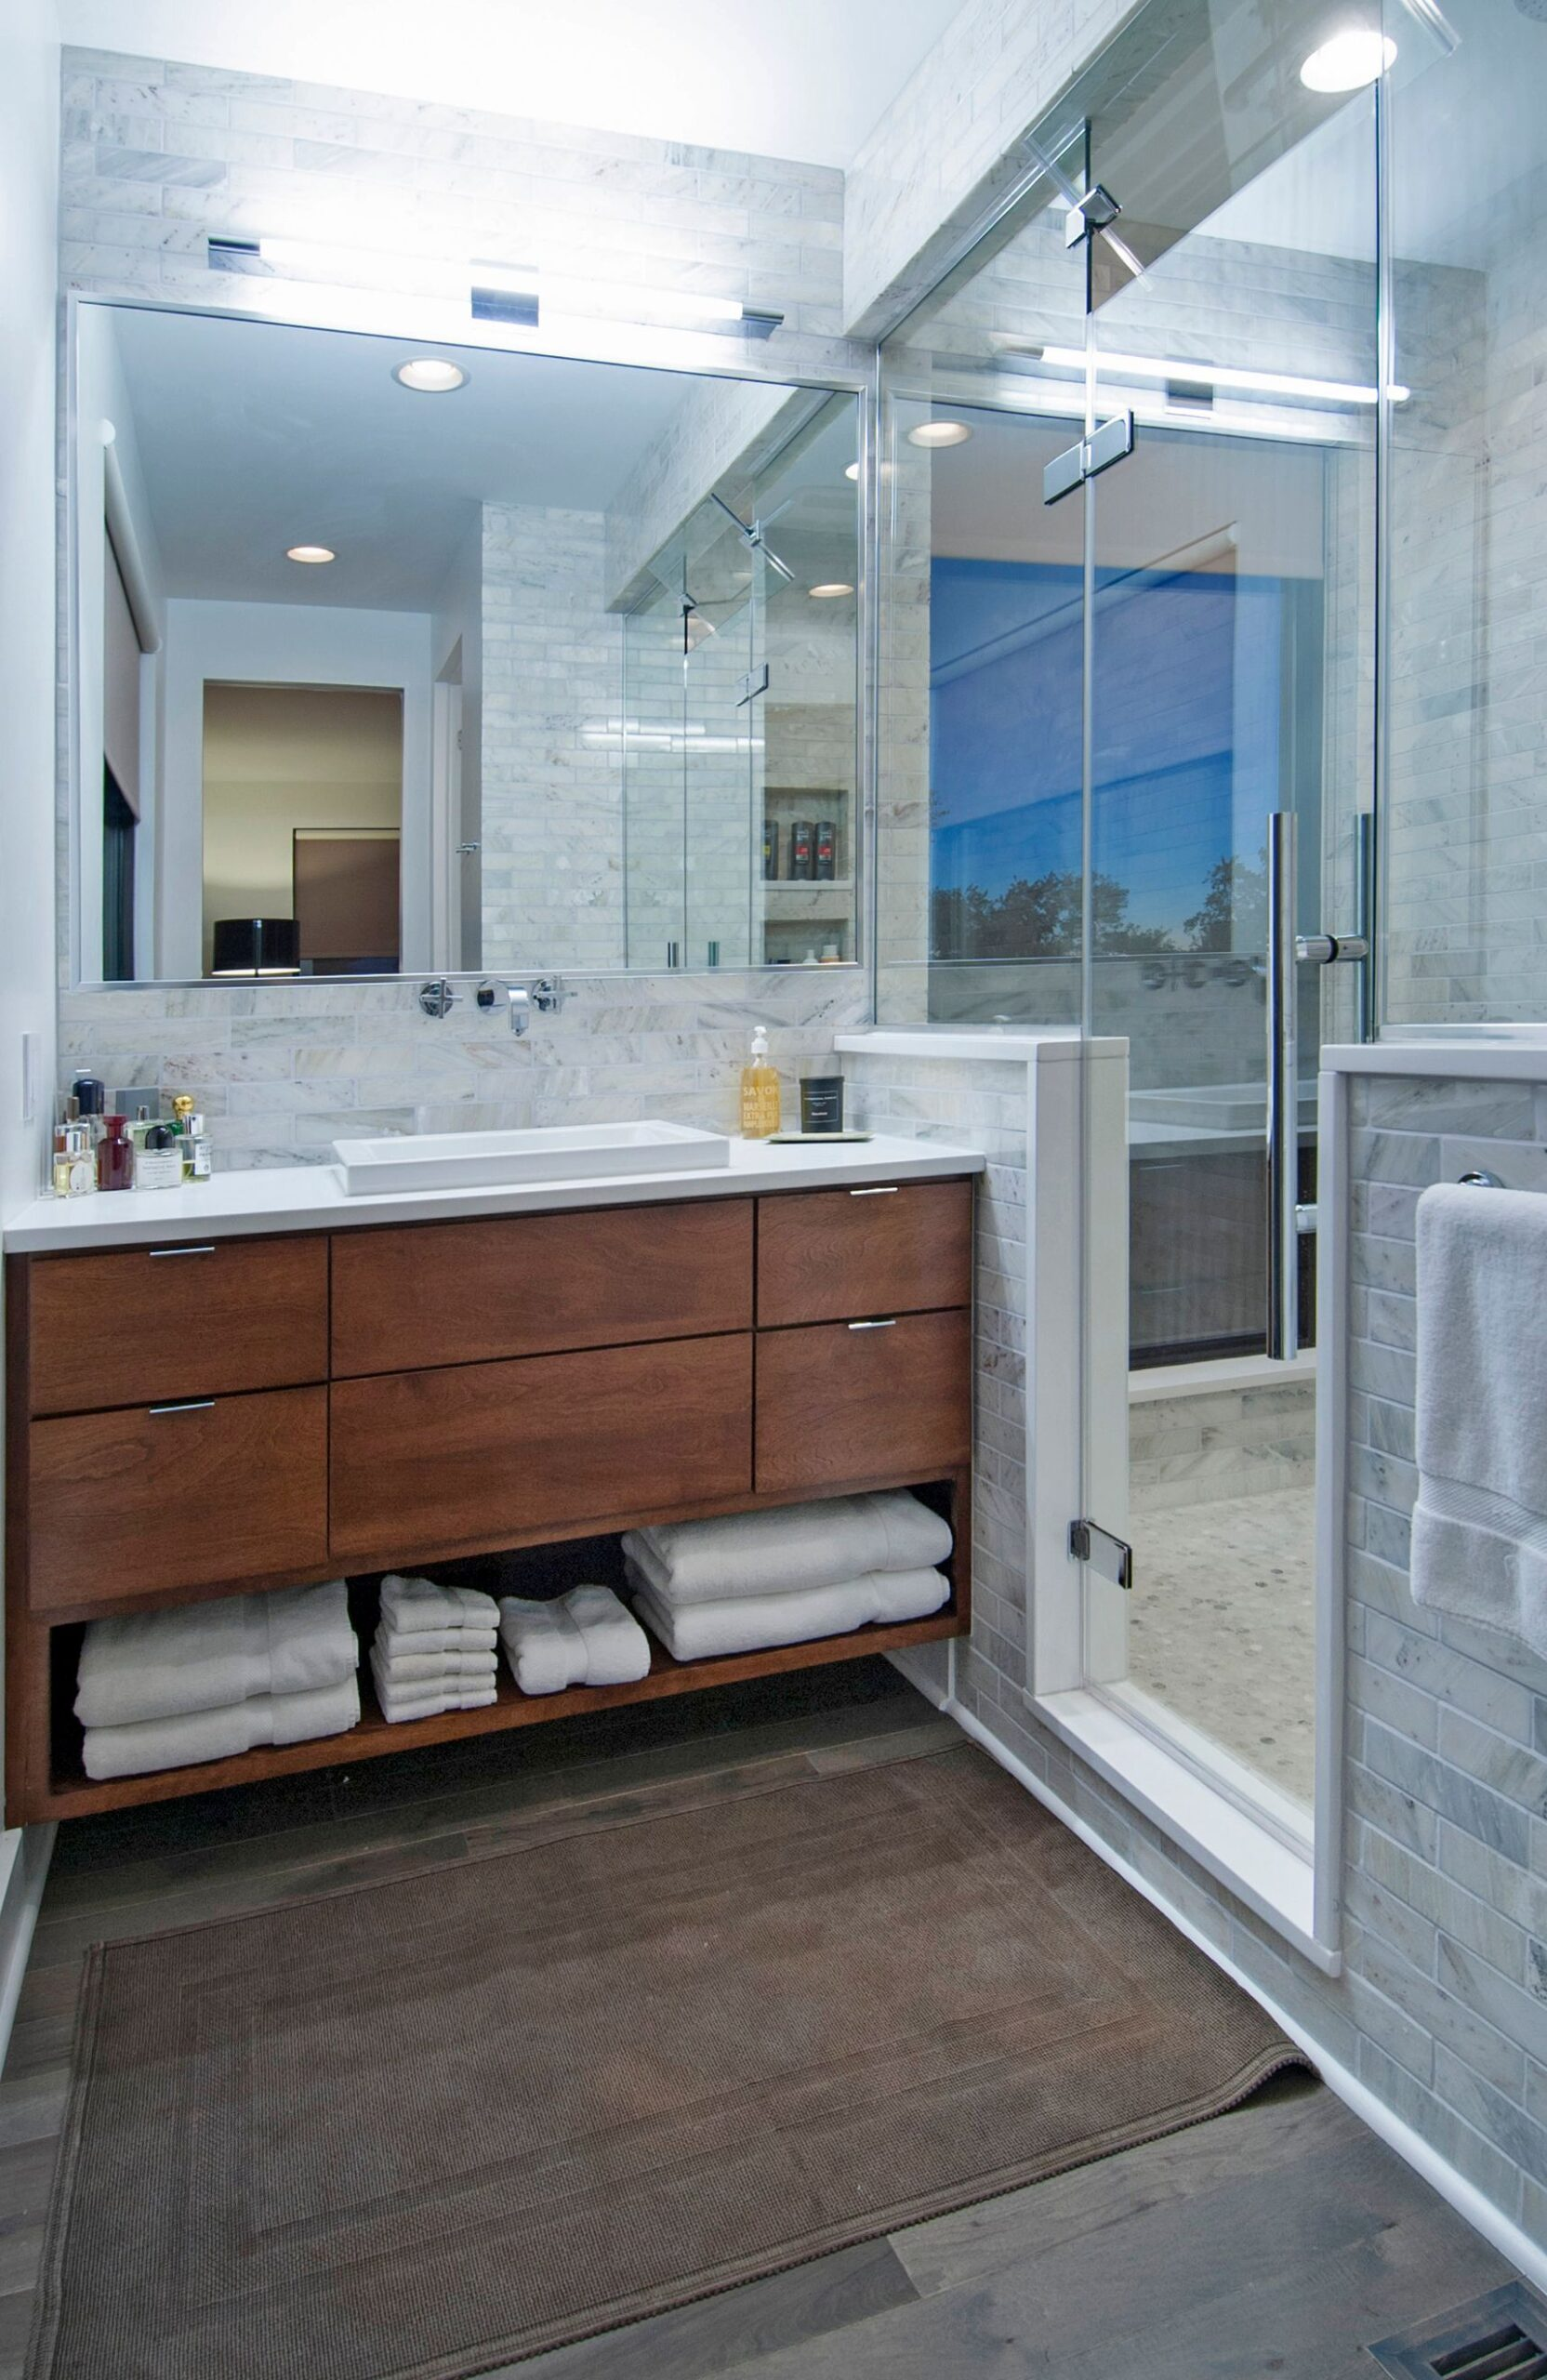 Design Tricks to Make Small Bathrooms Feel Much Larger